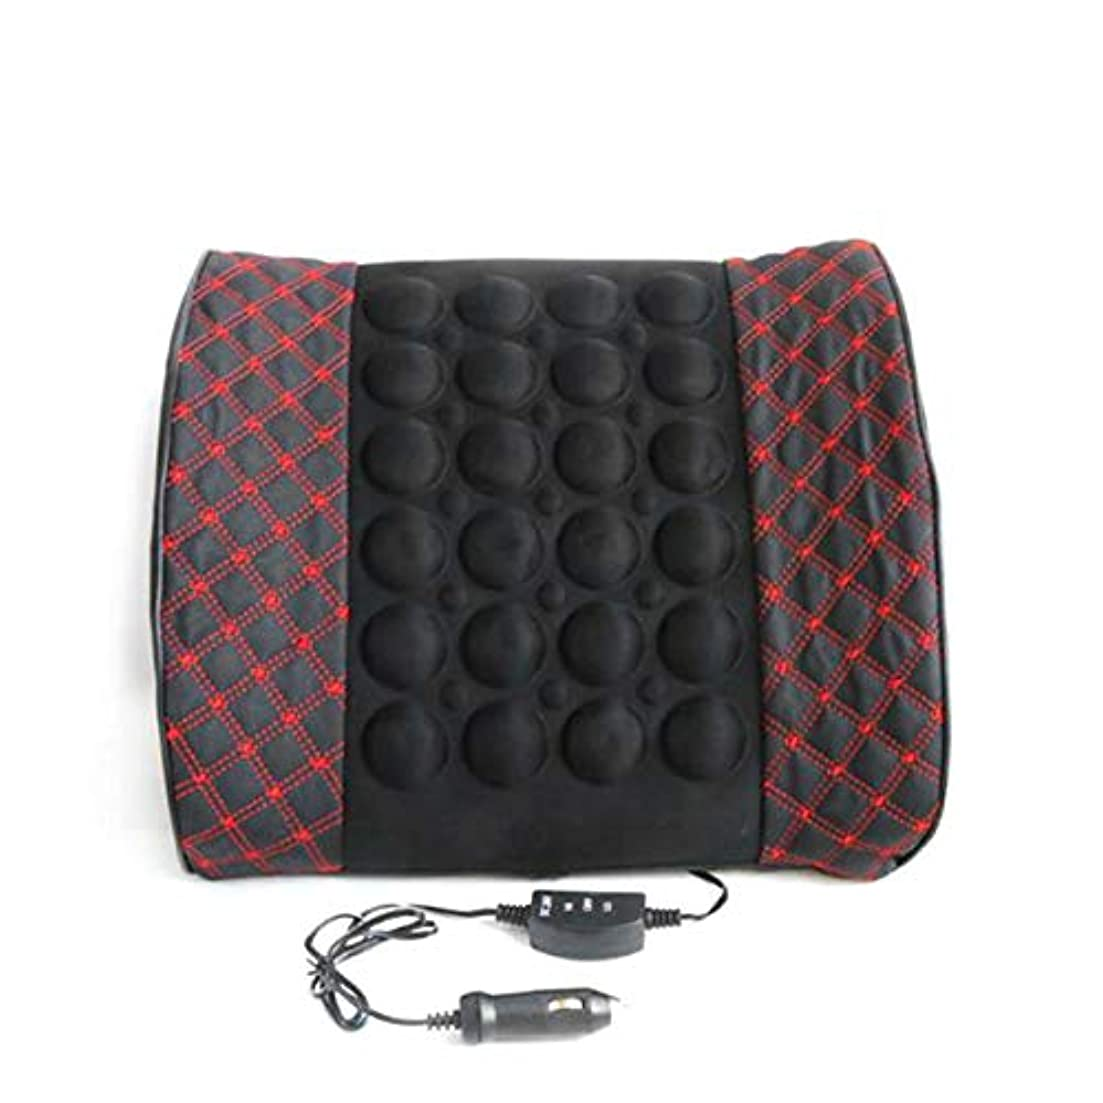 ブロックする決定的医学Microfiber Leather Car Back Support Lumbar Posture Support Breathable Electrical Massage Cushion Health Care Tool